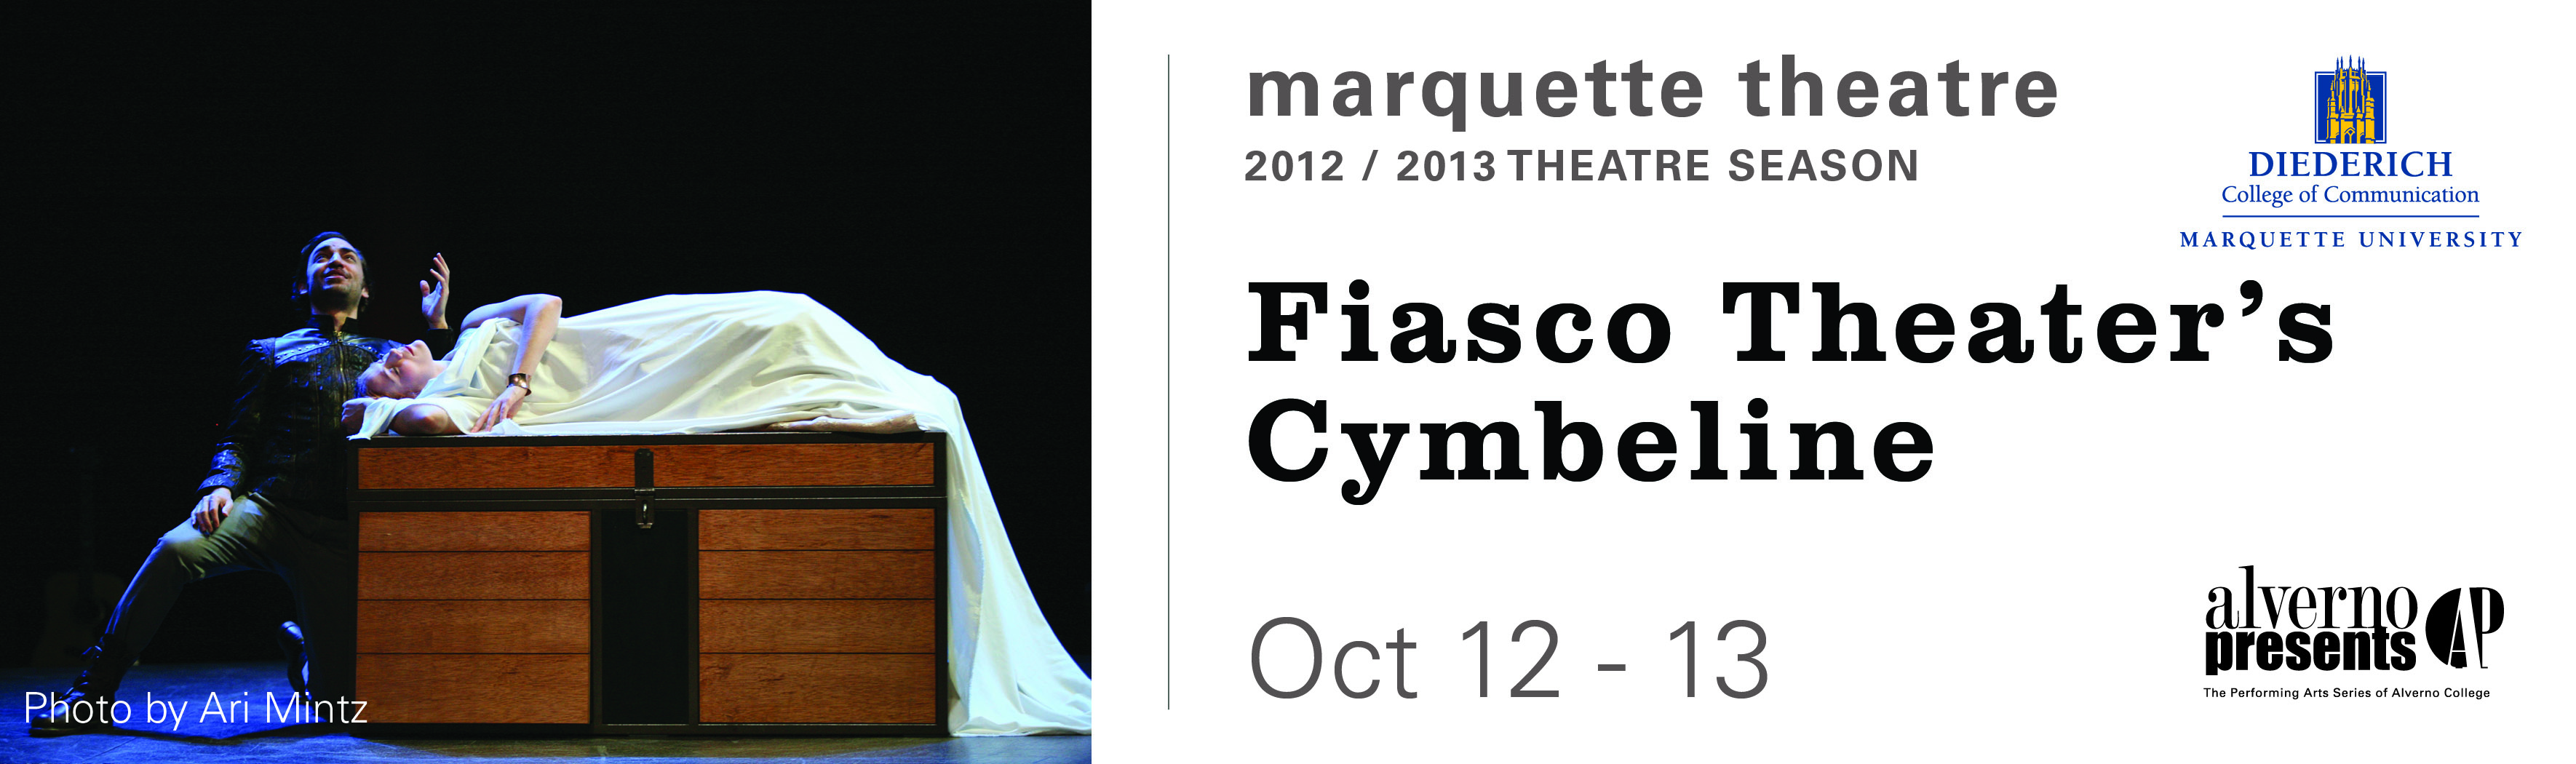 Tickets for Fiasco Theater's Cymbeline in Milwaukee from ShowClix